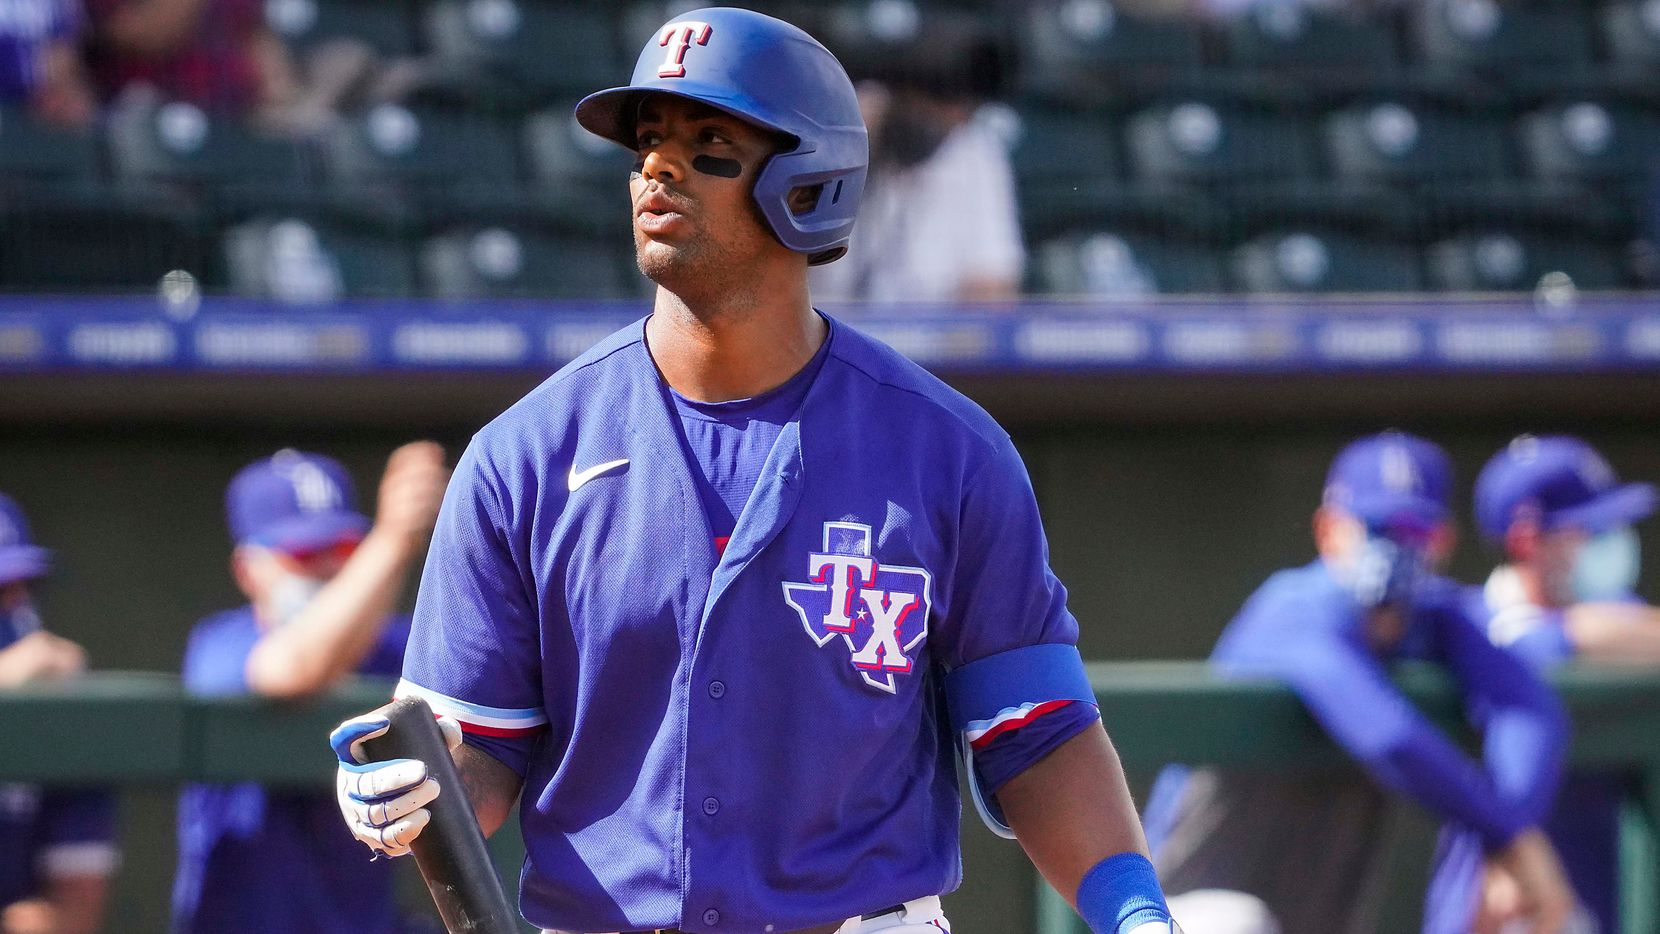 Texas Rangers designated hitter Khris Davis heads back to the dugout after striking out during the sixth inning of a spring training game against the Los Angeles Dodgers at Surprise Stadium on Sunday, March 7, 2021, in Surprise, Ariz. (Smiley N. Pool/The Dallas Morning News)